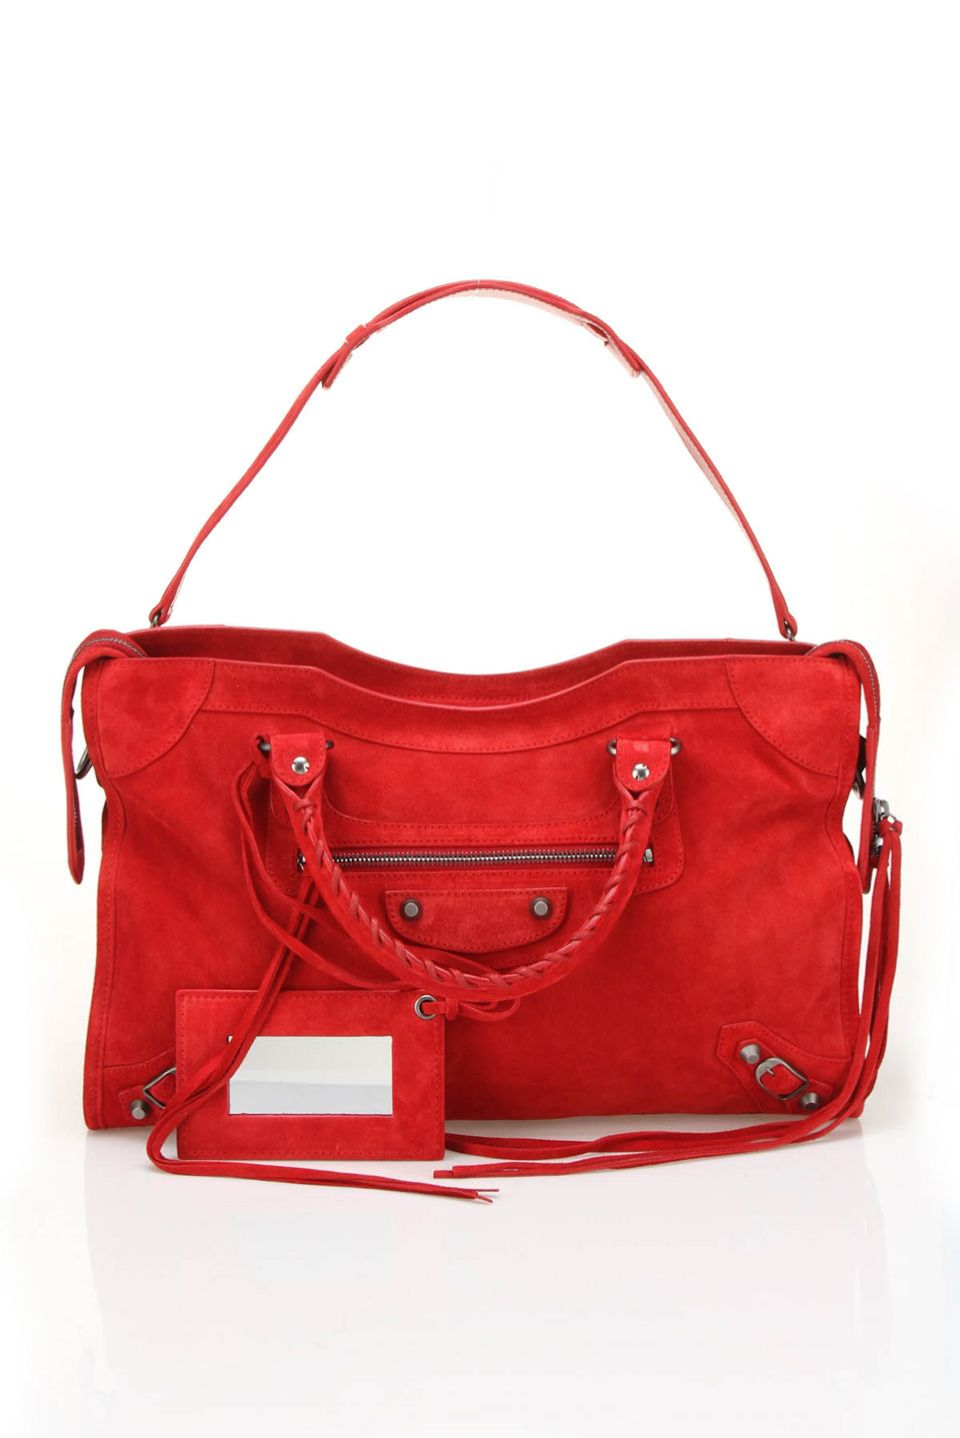 f91c545f1df8 Balenciaga Baby Daim City Handbag In Red Replica Handbags